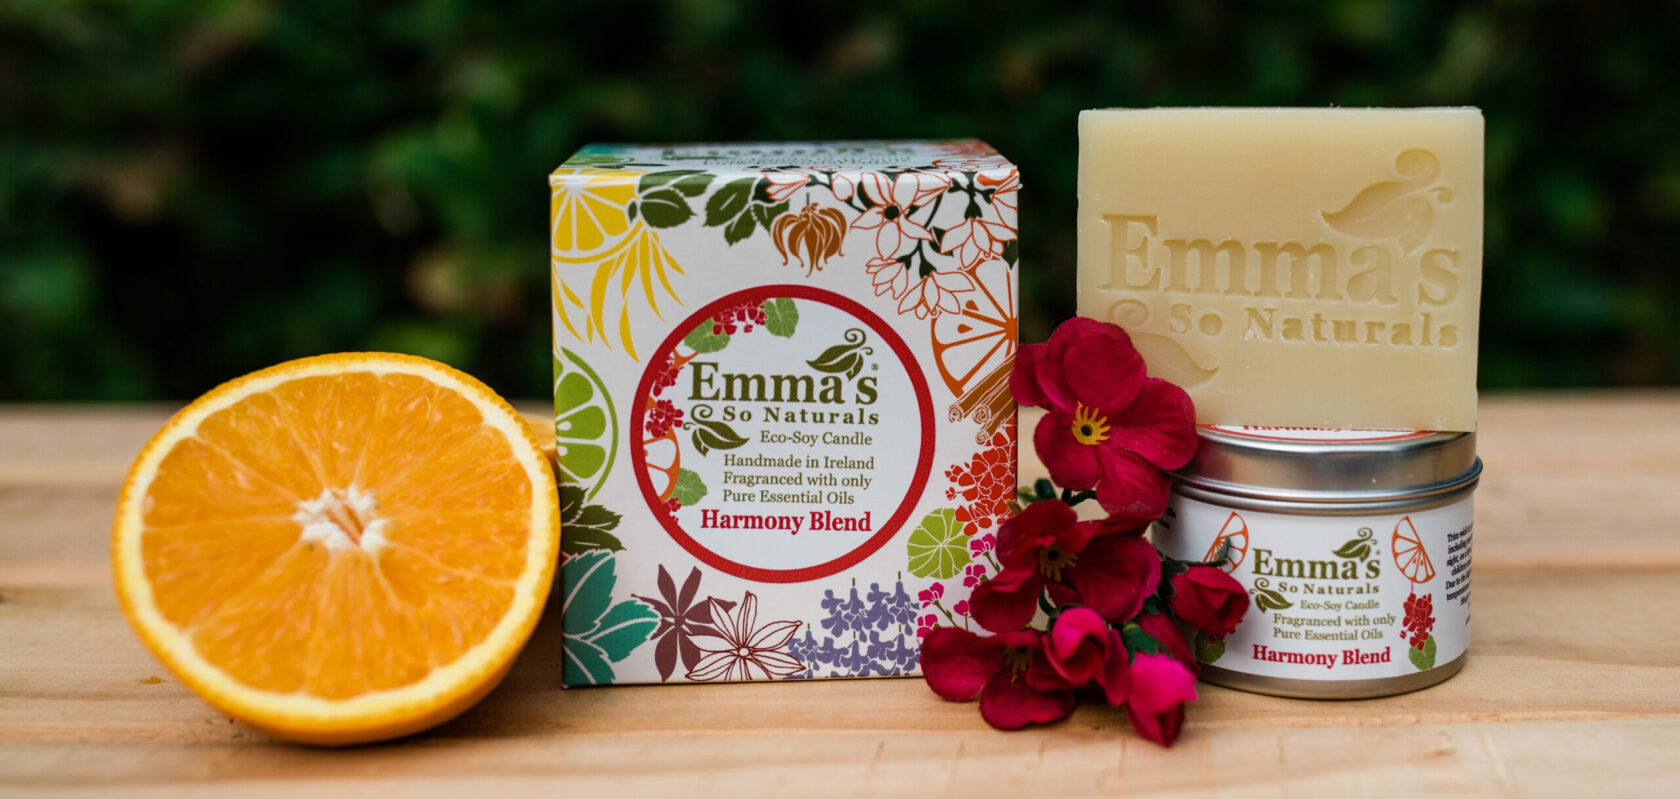 Emma S So Naturals Eco Soy Candles